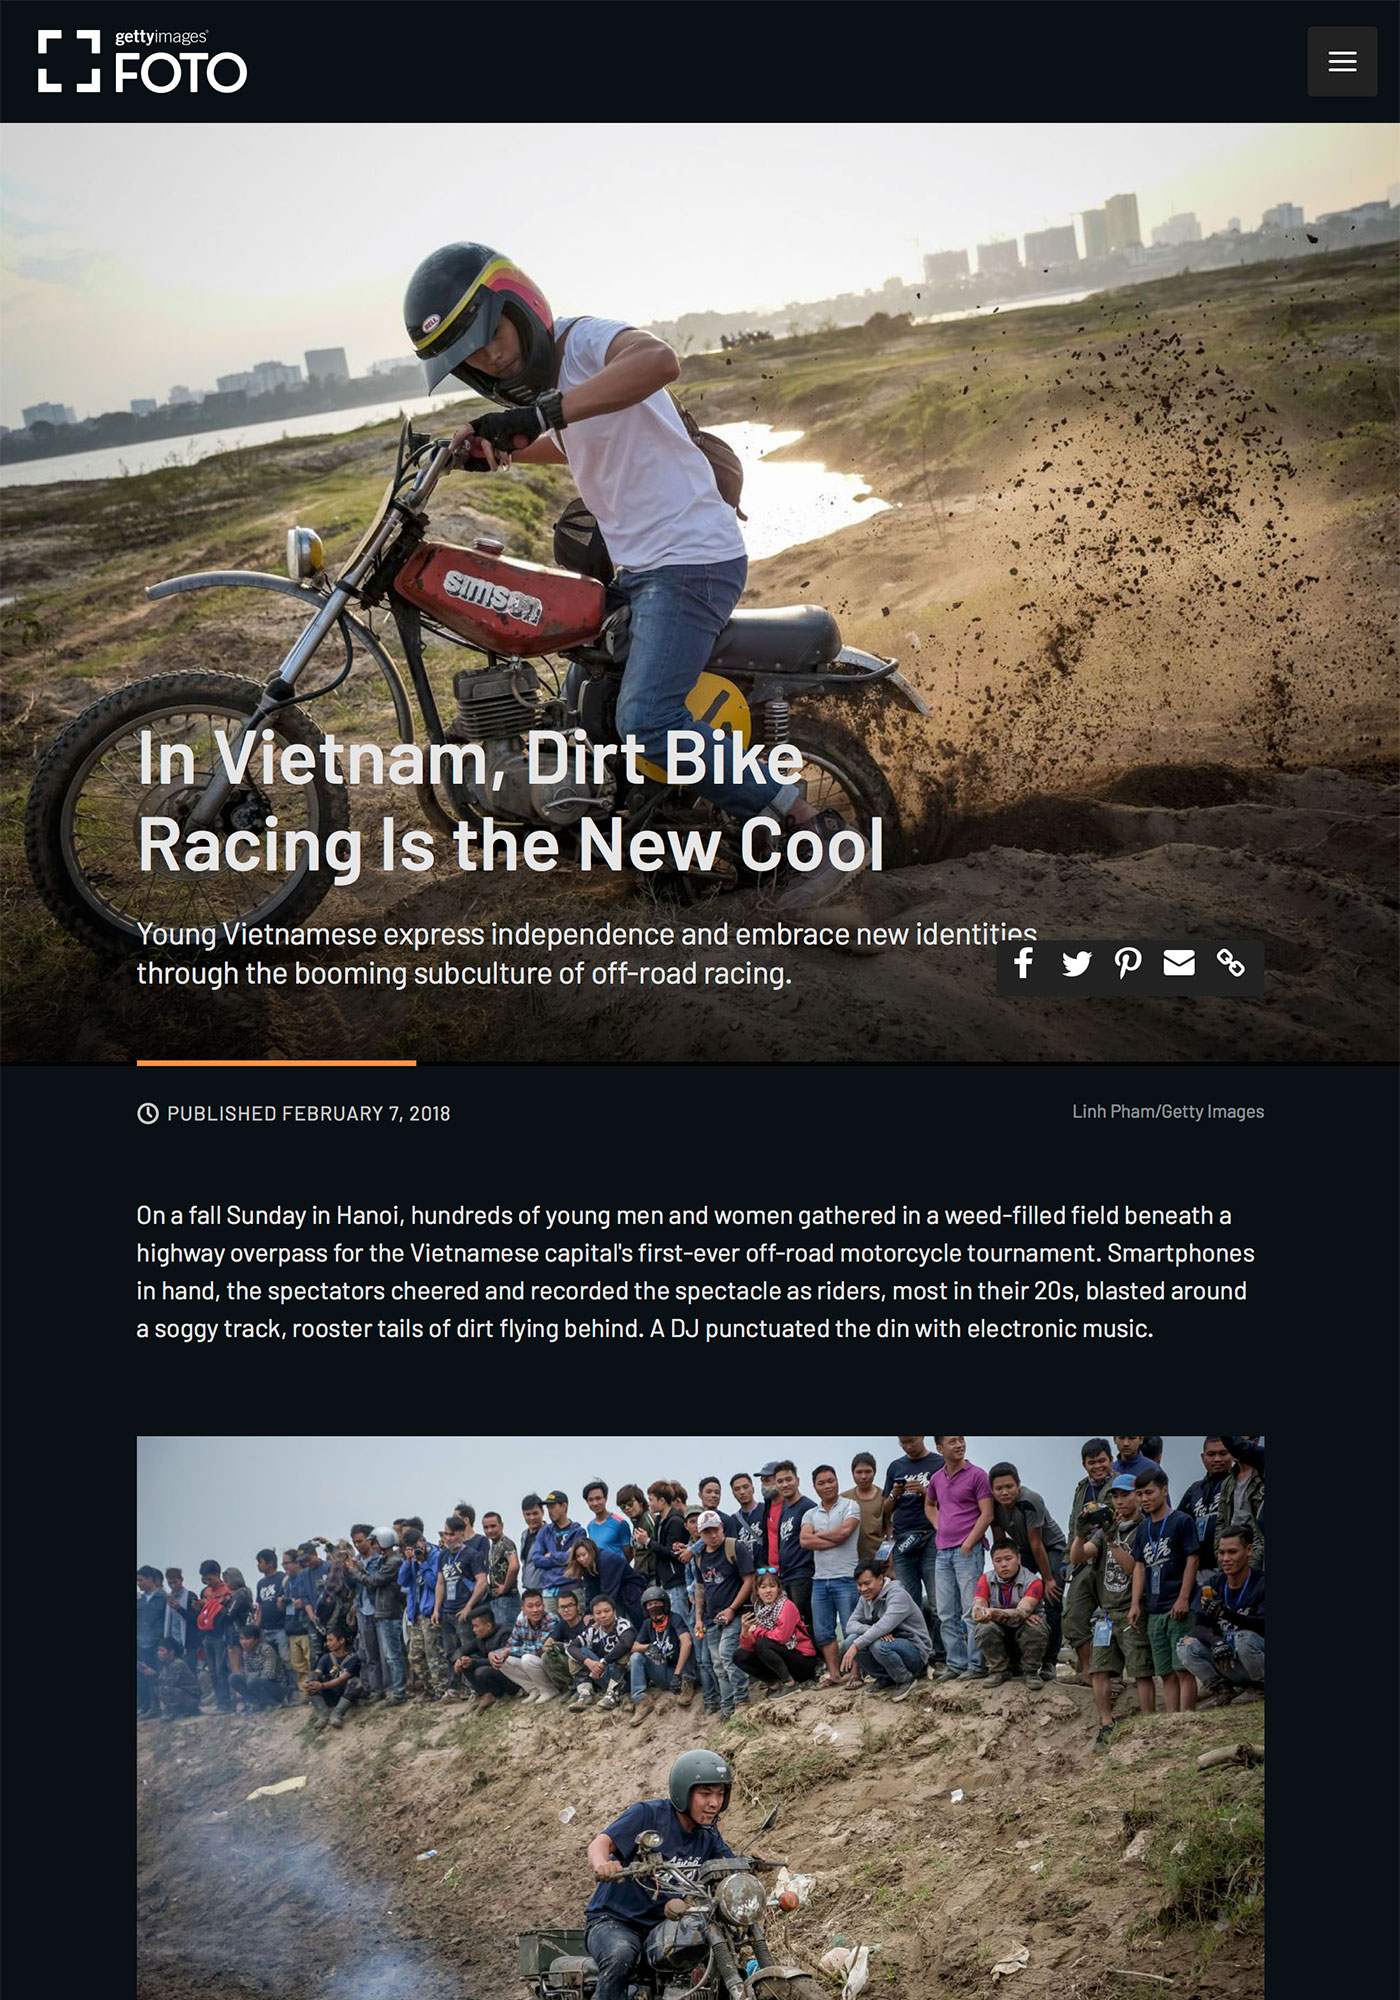 In-Vietnam,-Dirt-Bike-Racing-Is-the-New-Cool-_-Getty-Images-FOTO.jpg